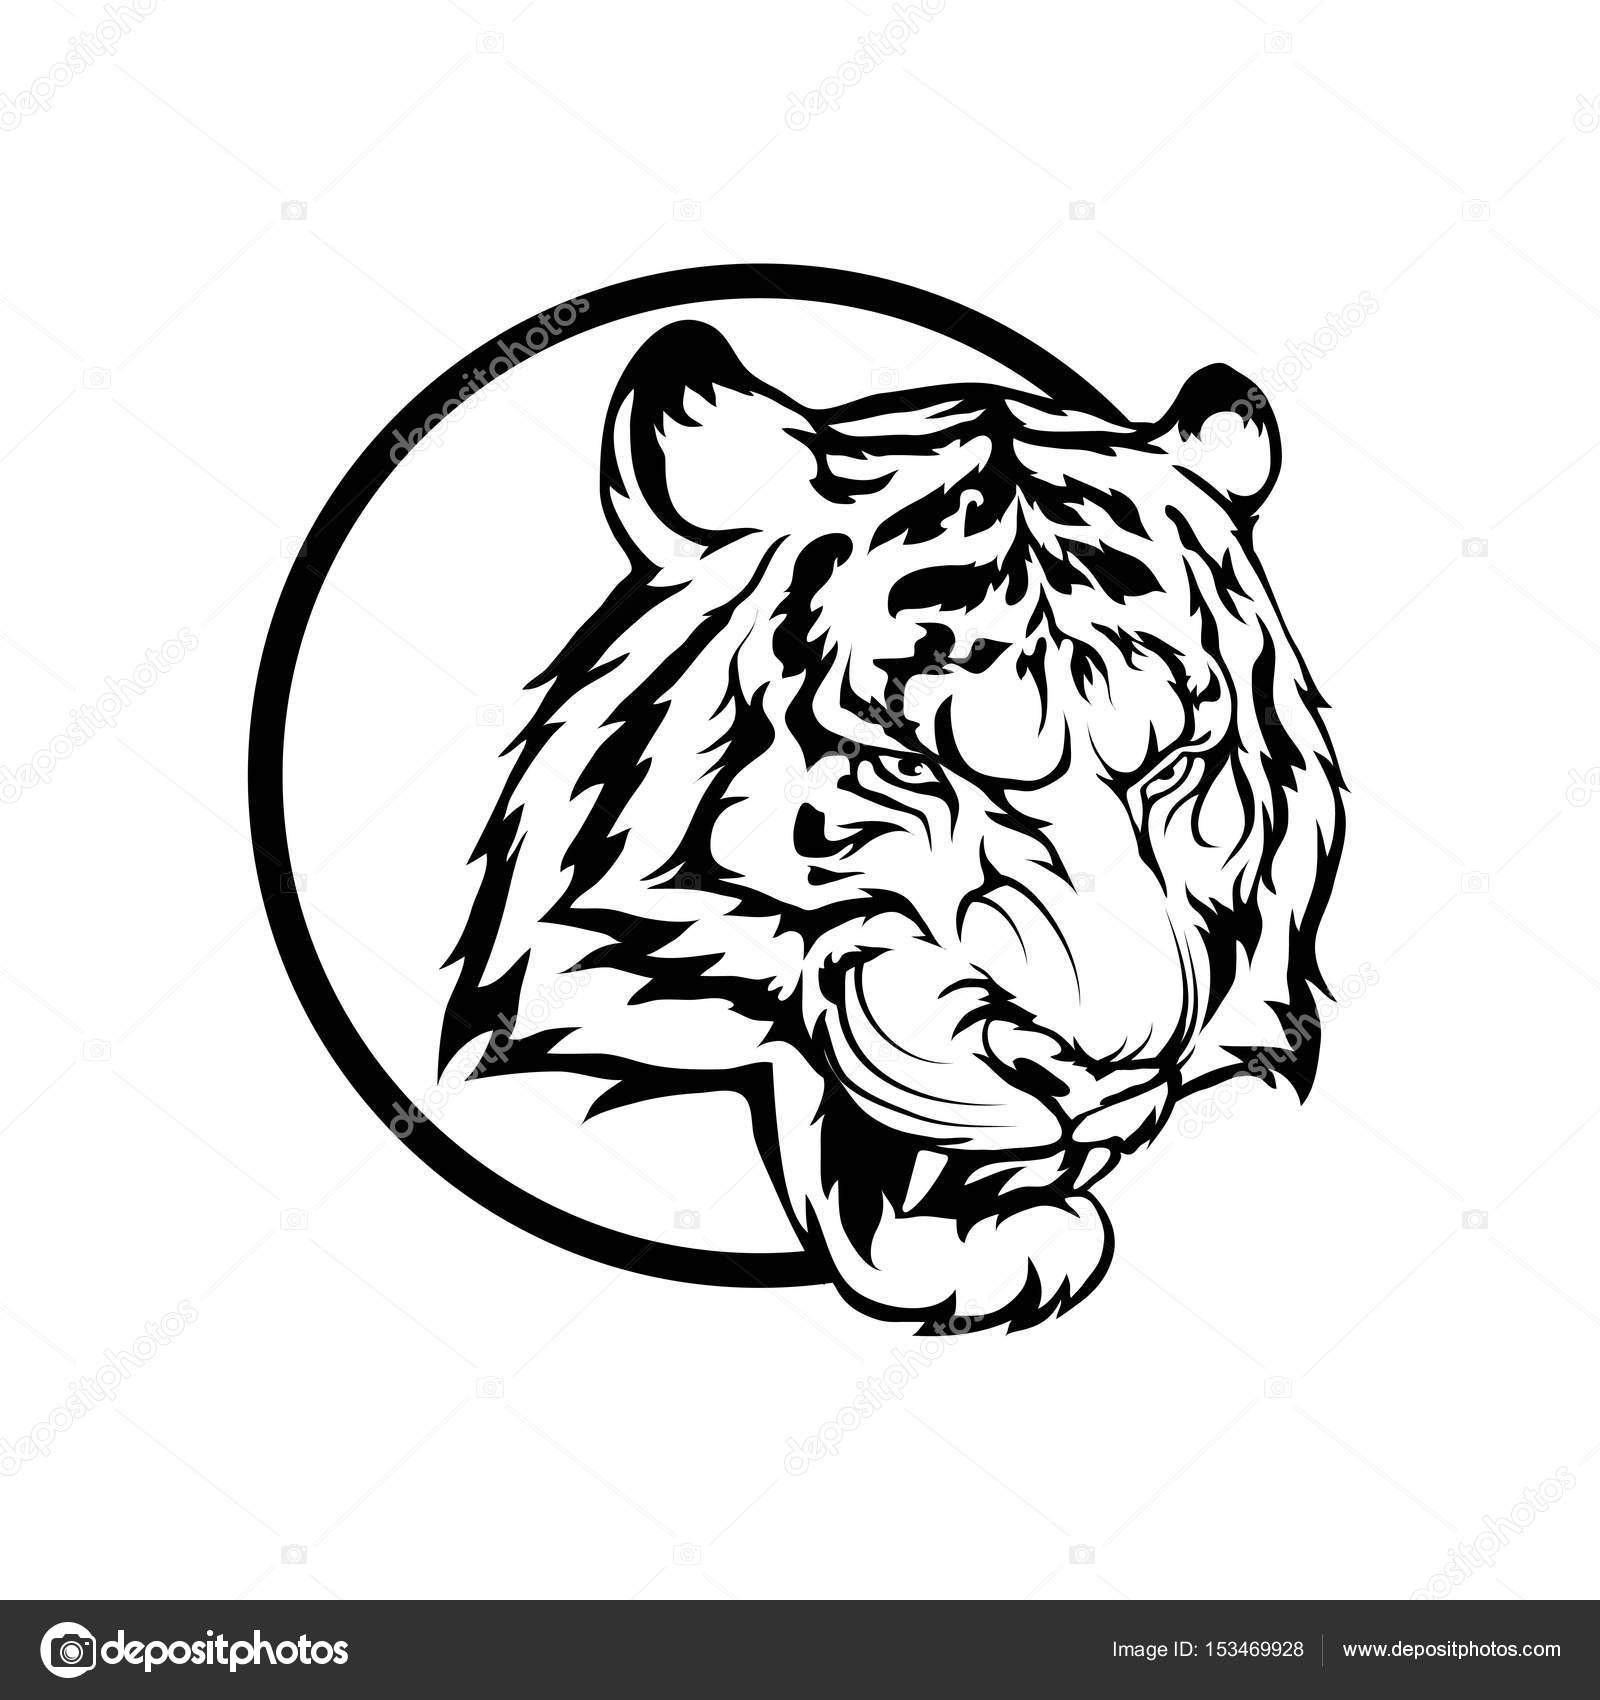 Tiger Head Line Drawing at GetDrawings.com | Free for personal use ...